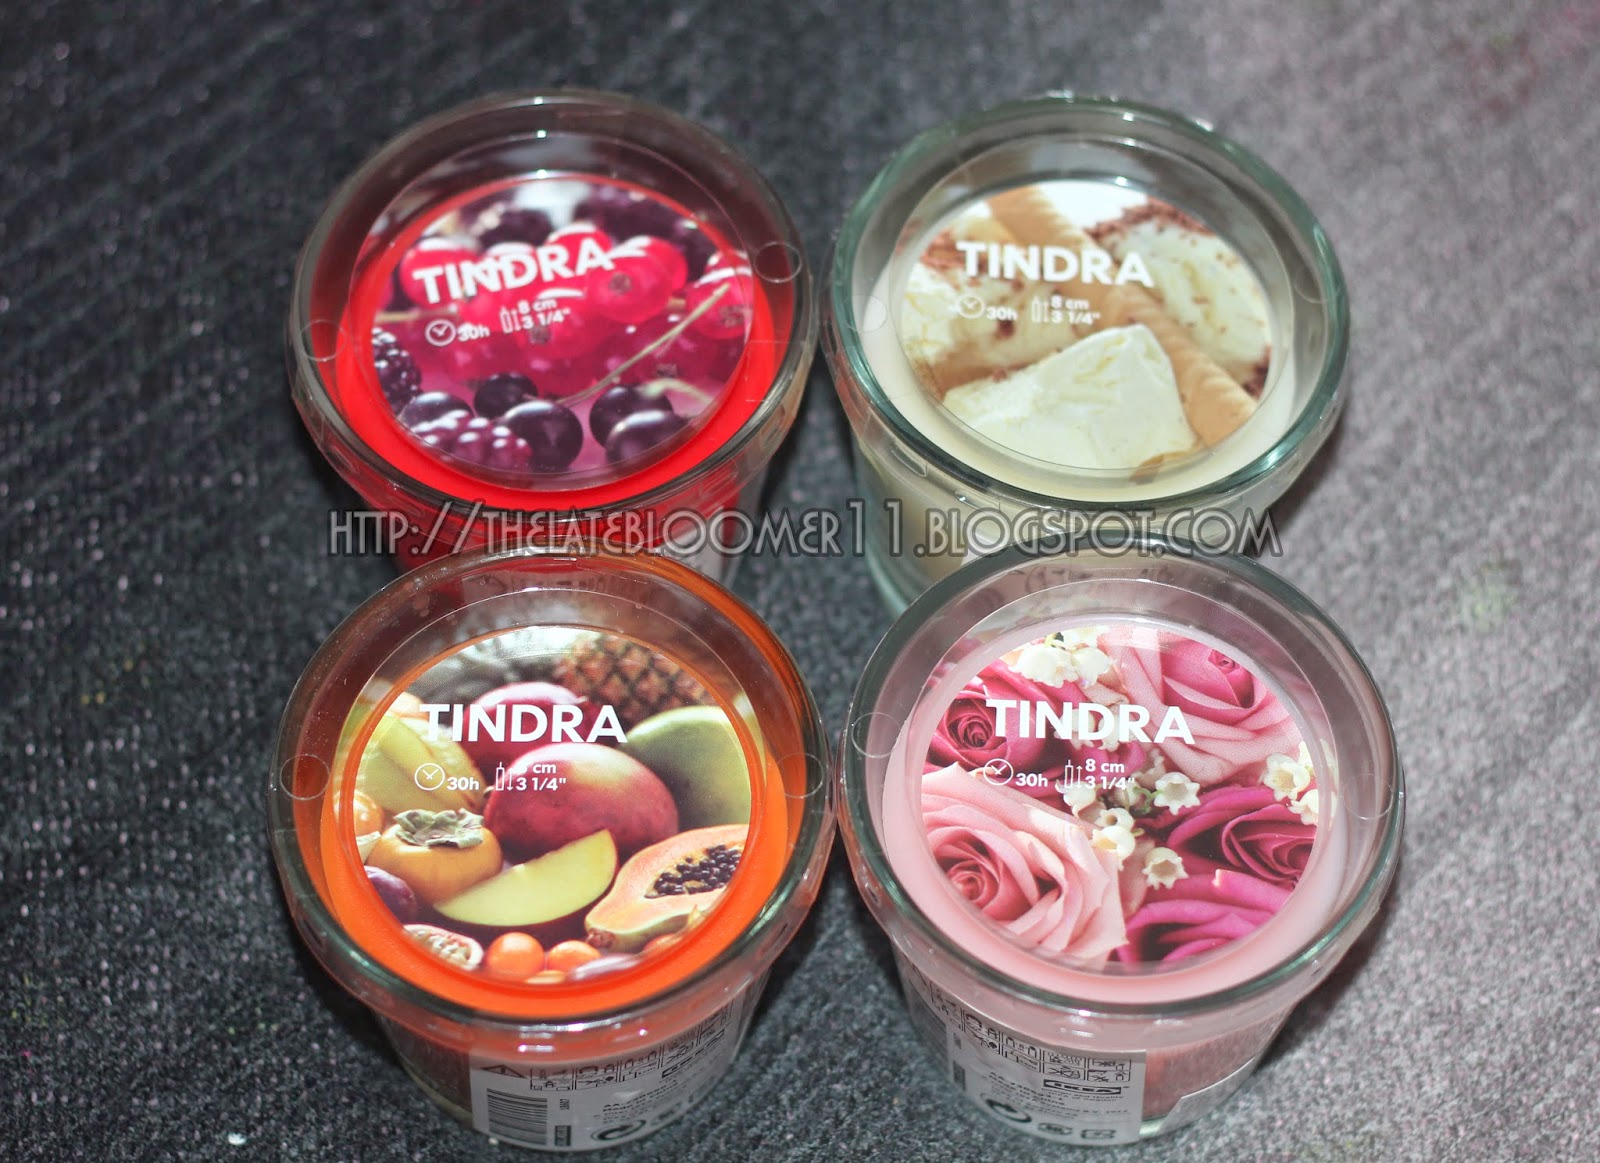 MY NEW FOUND LOVE: IKEA TINDRA SCENTED CANDLES